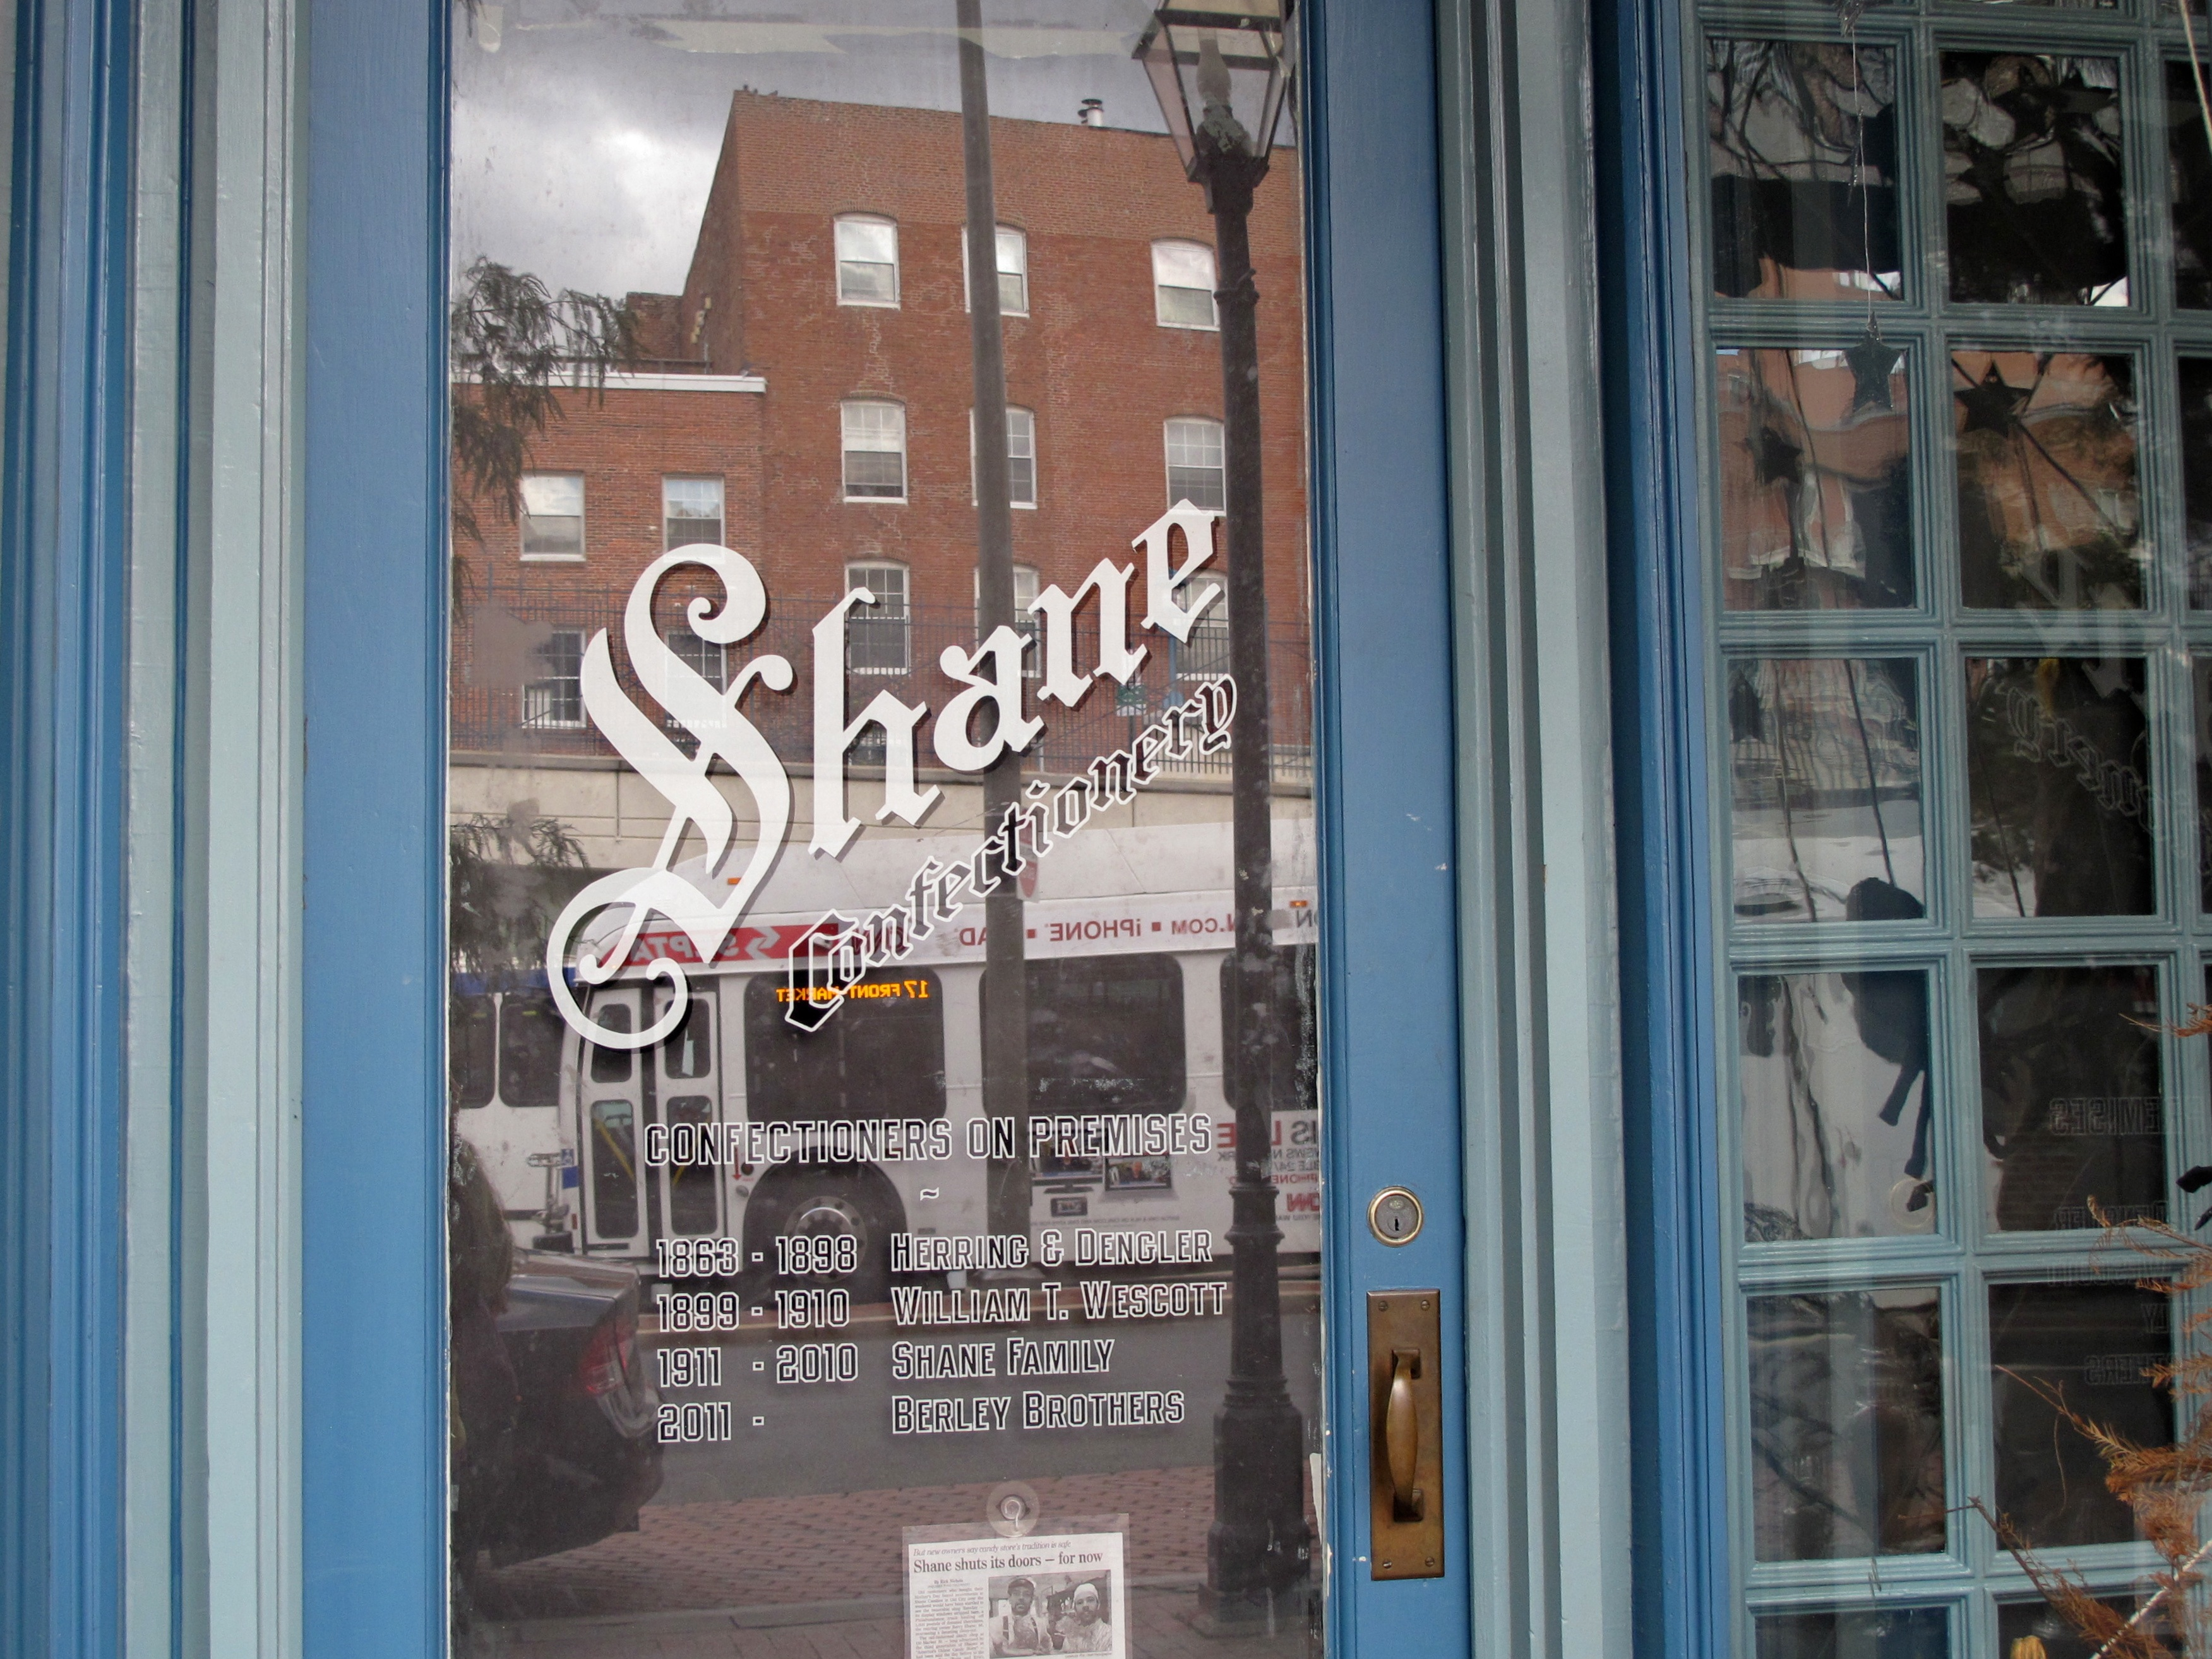 Shane Confectionery in Old City reopens this month. | PlanPhilly